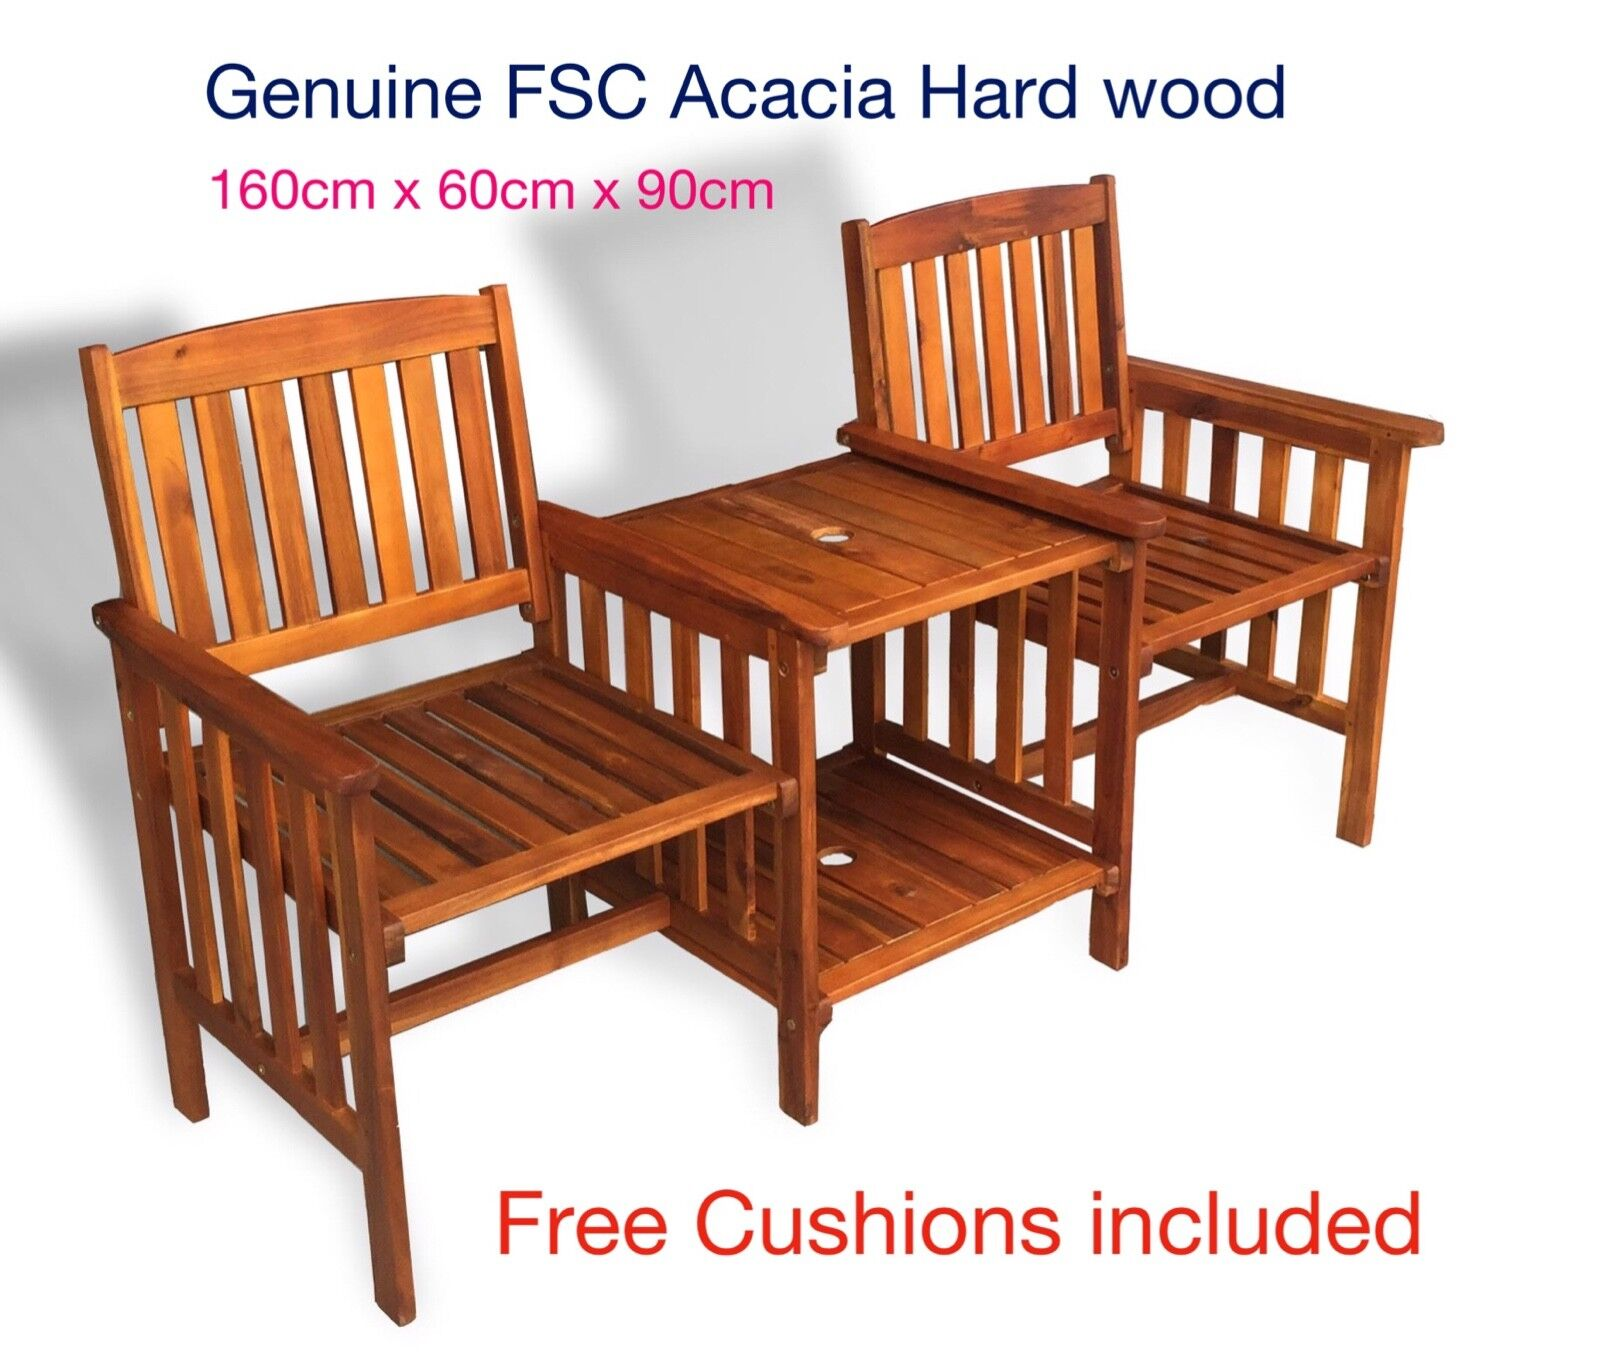 2 Seater Wooden Love Seat Chair Garden Furniture Wood Patio Outdoor With Table